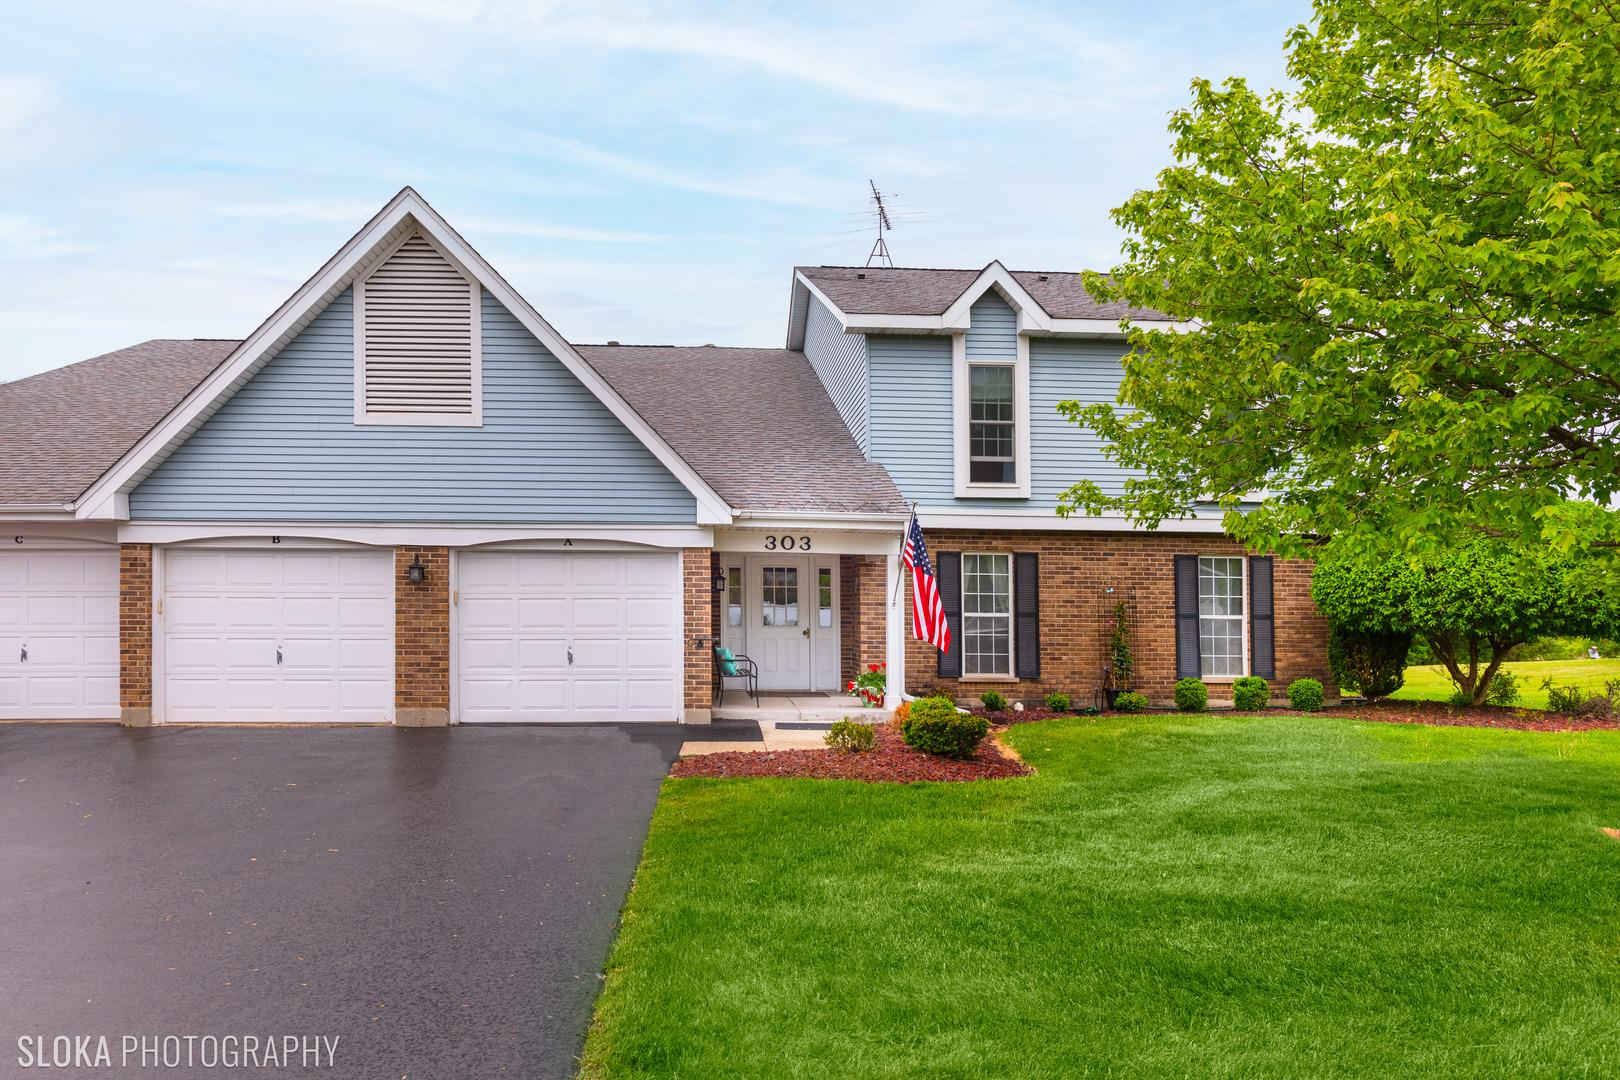 303 N Creekside Trail #D, McHenry, IL 60050 - #: 11081613